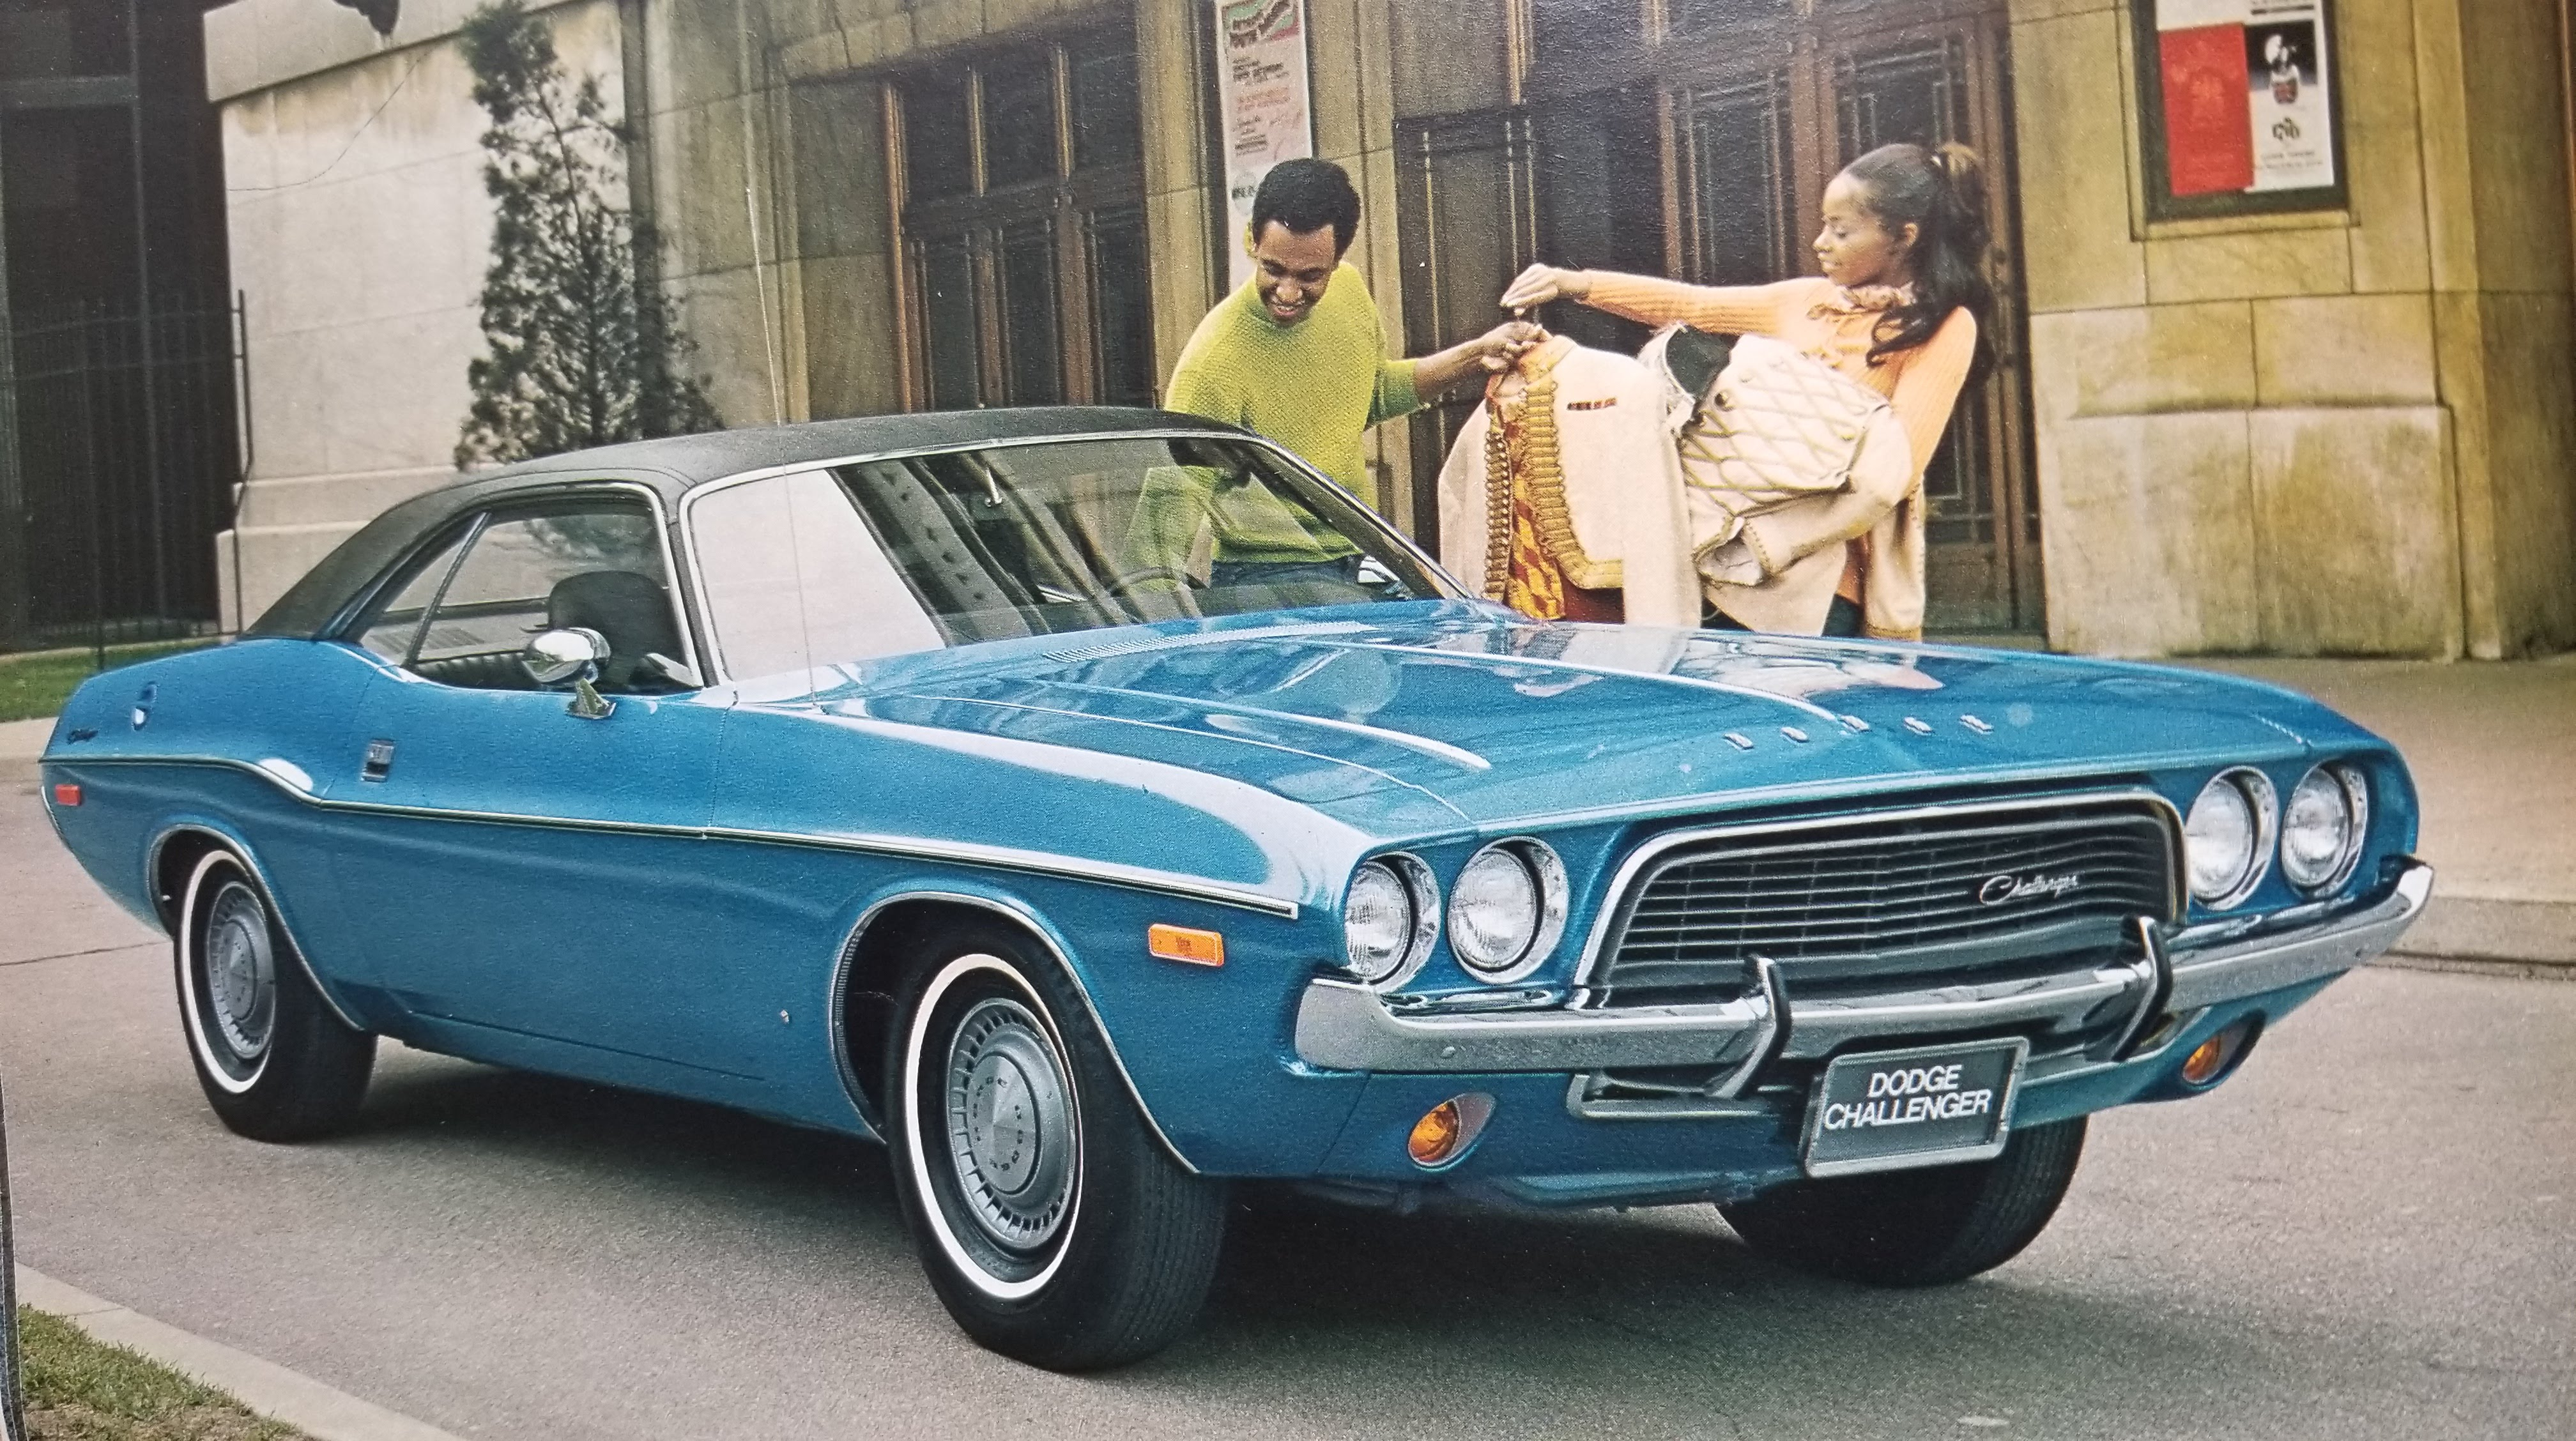 Image of Dodge Challenger in 1972